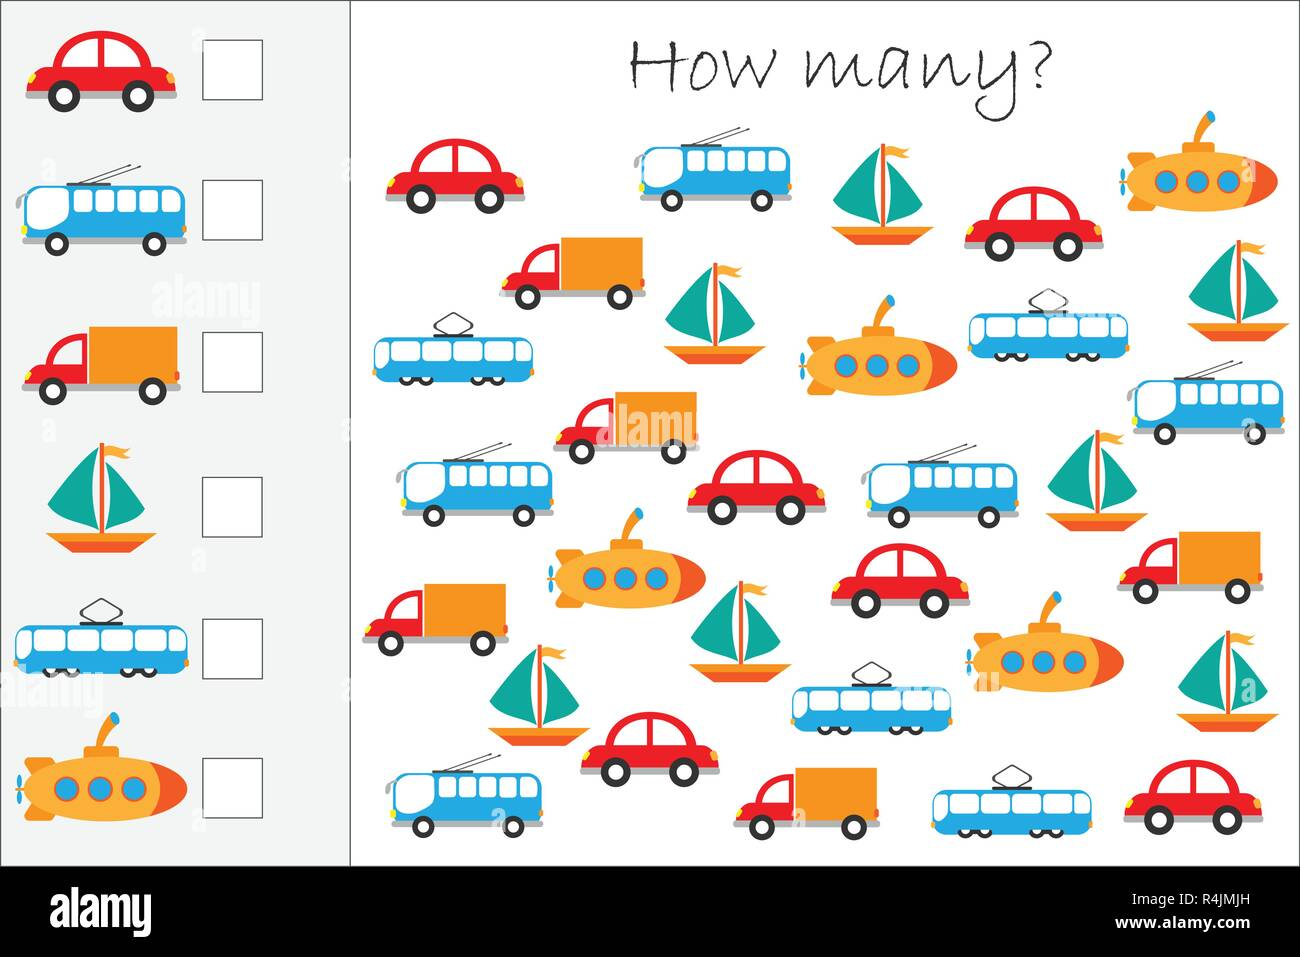 How Many Counting Game With Colorful Transport For Kids